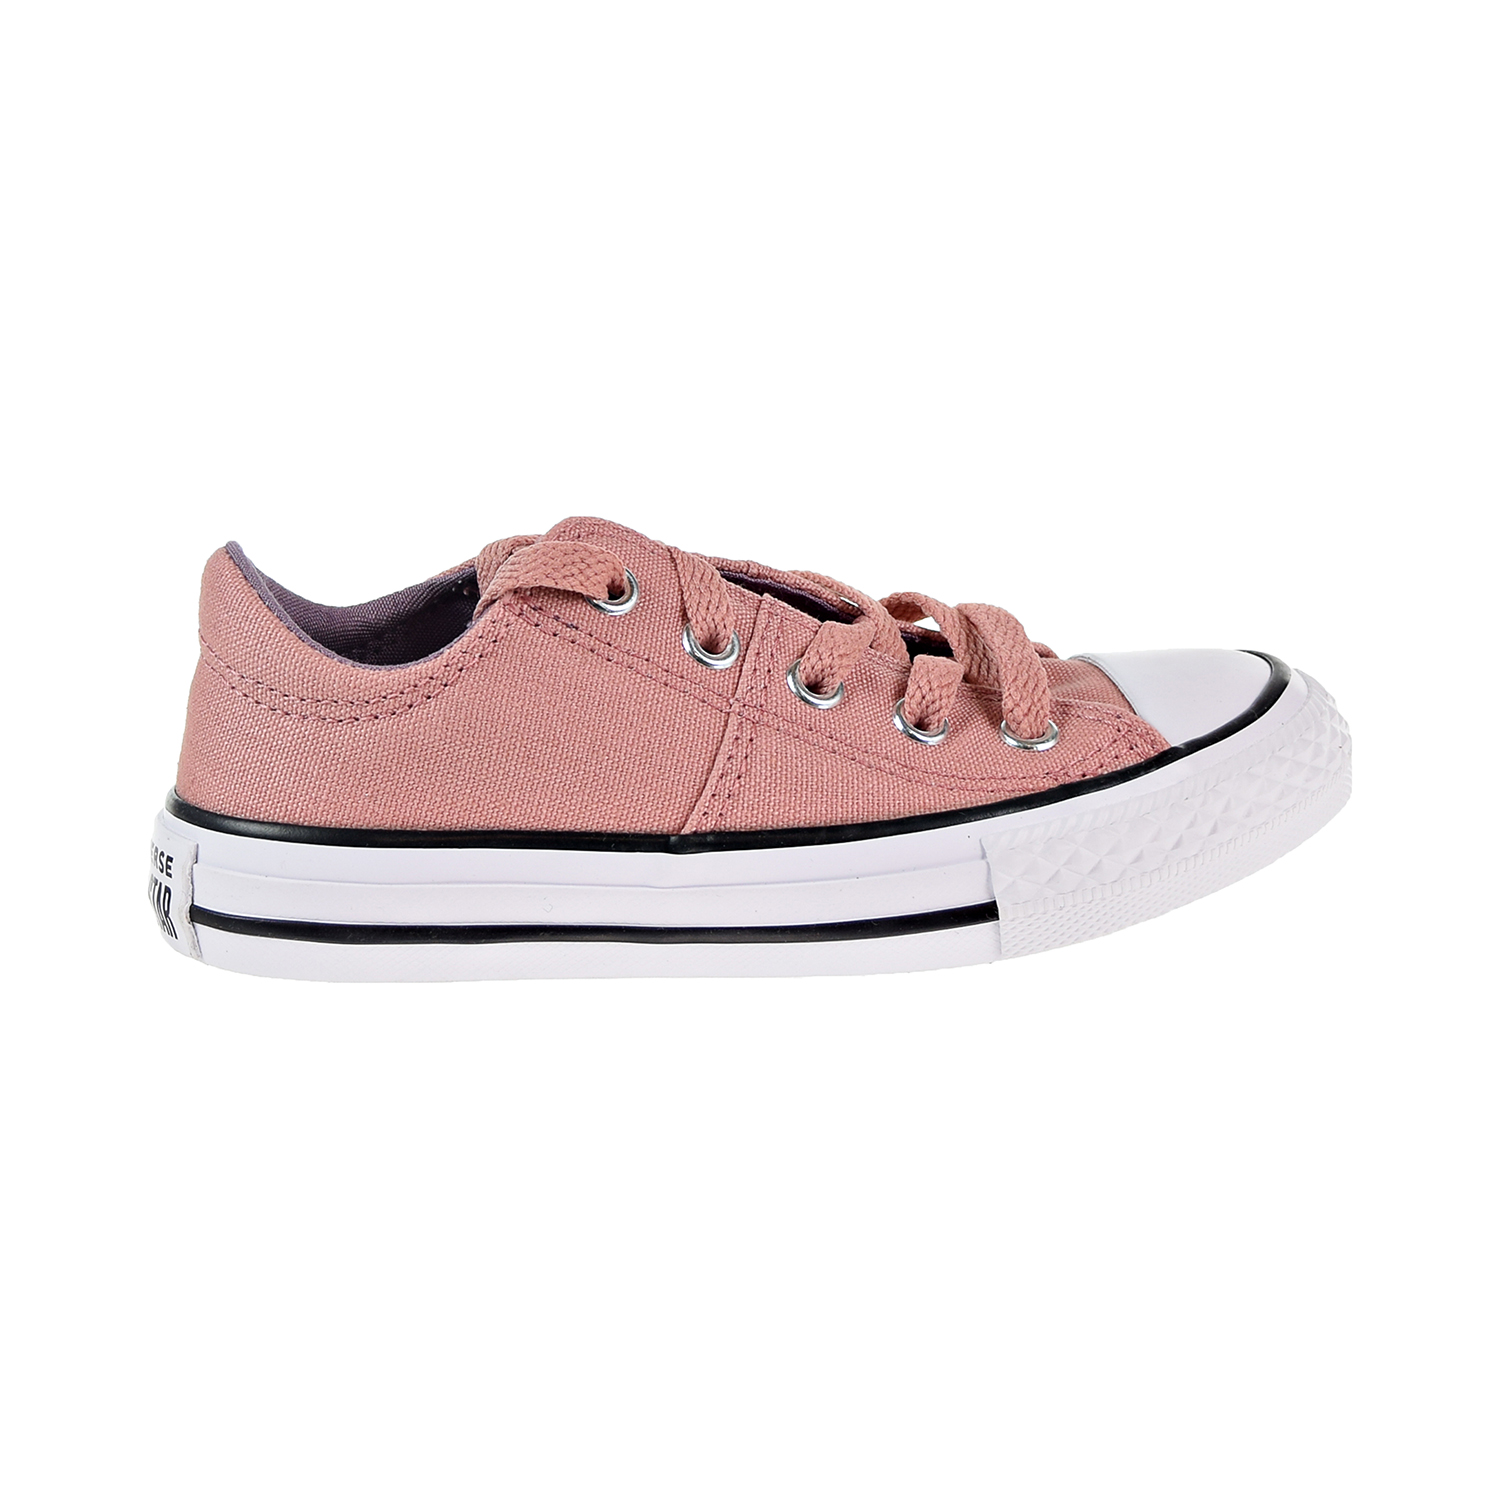 206386940a2a Converse Chuck Taylor All Star Madison Ox Little Big Kids Shoes Rust Pink Violet  661881f